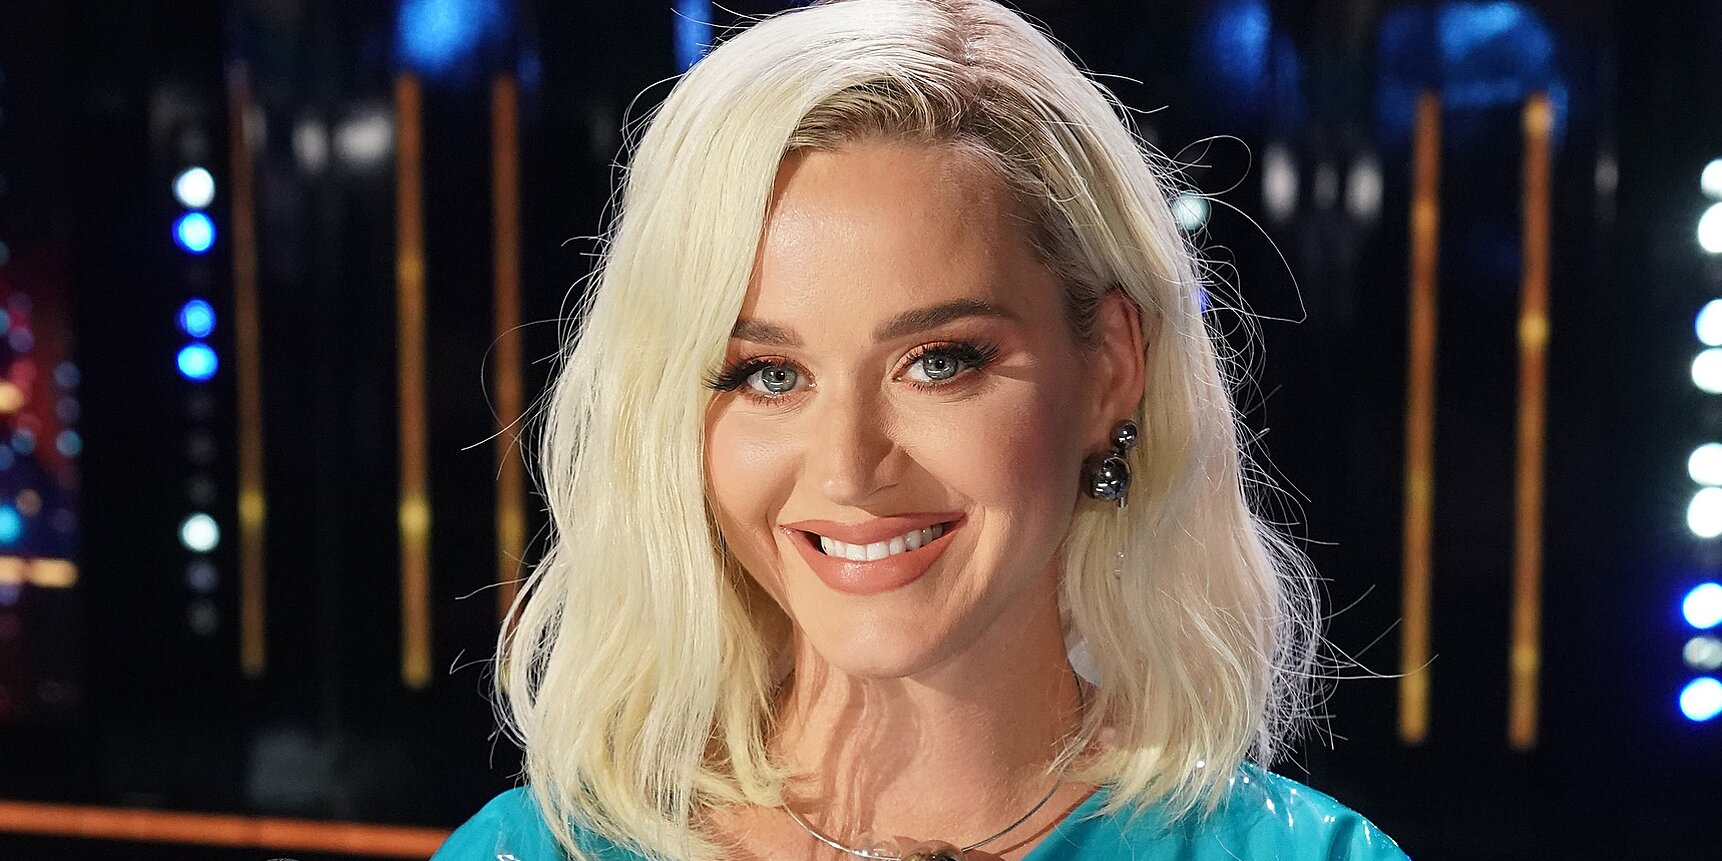 Katy Perry Clapped Back at Luke Bryan for Telling Her to Shave Her Legs